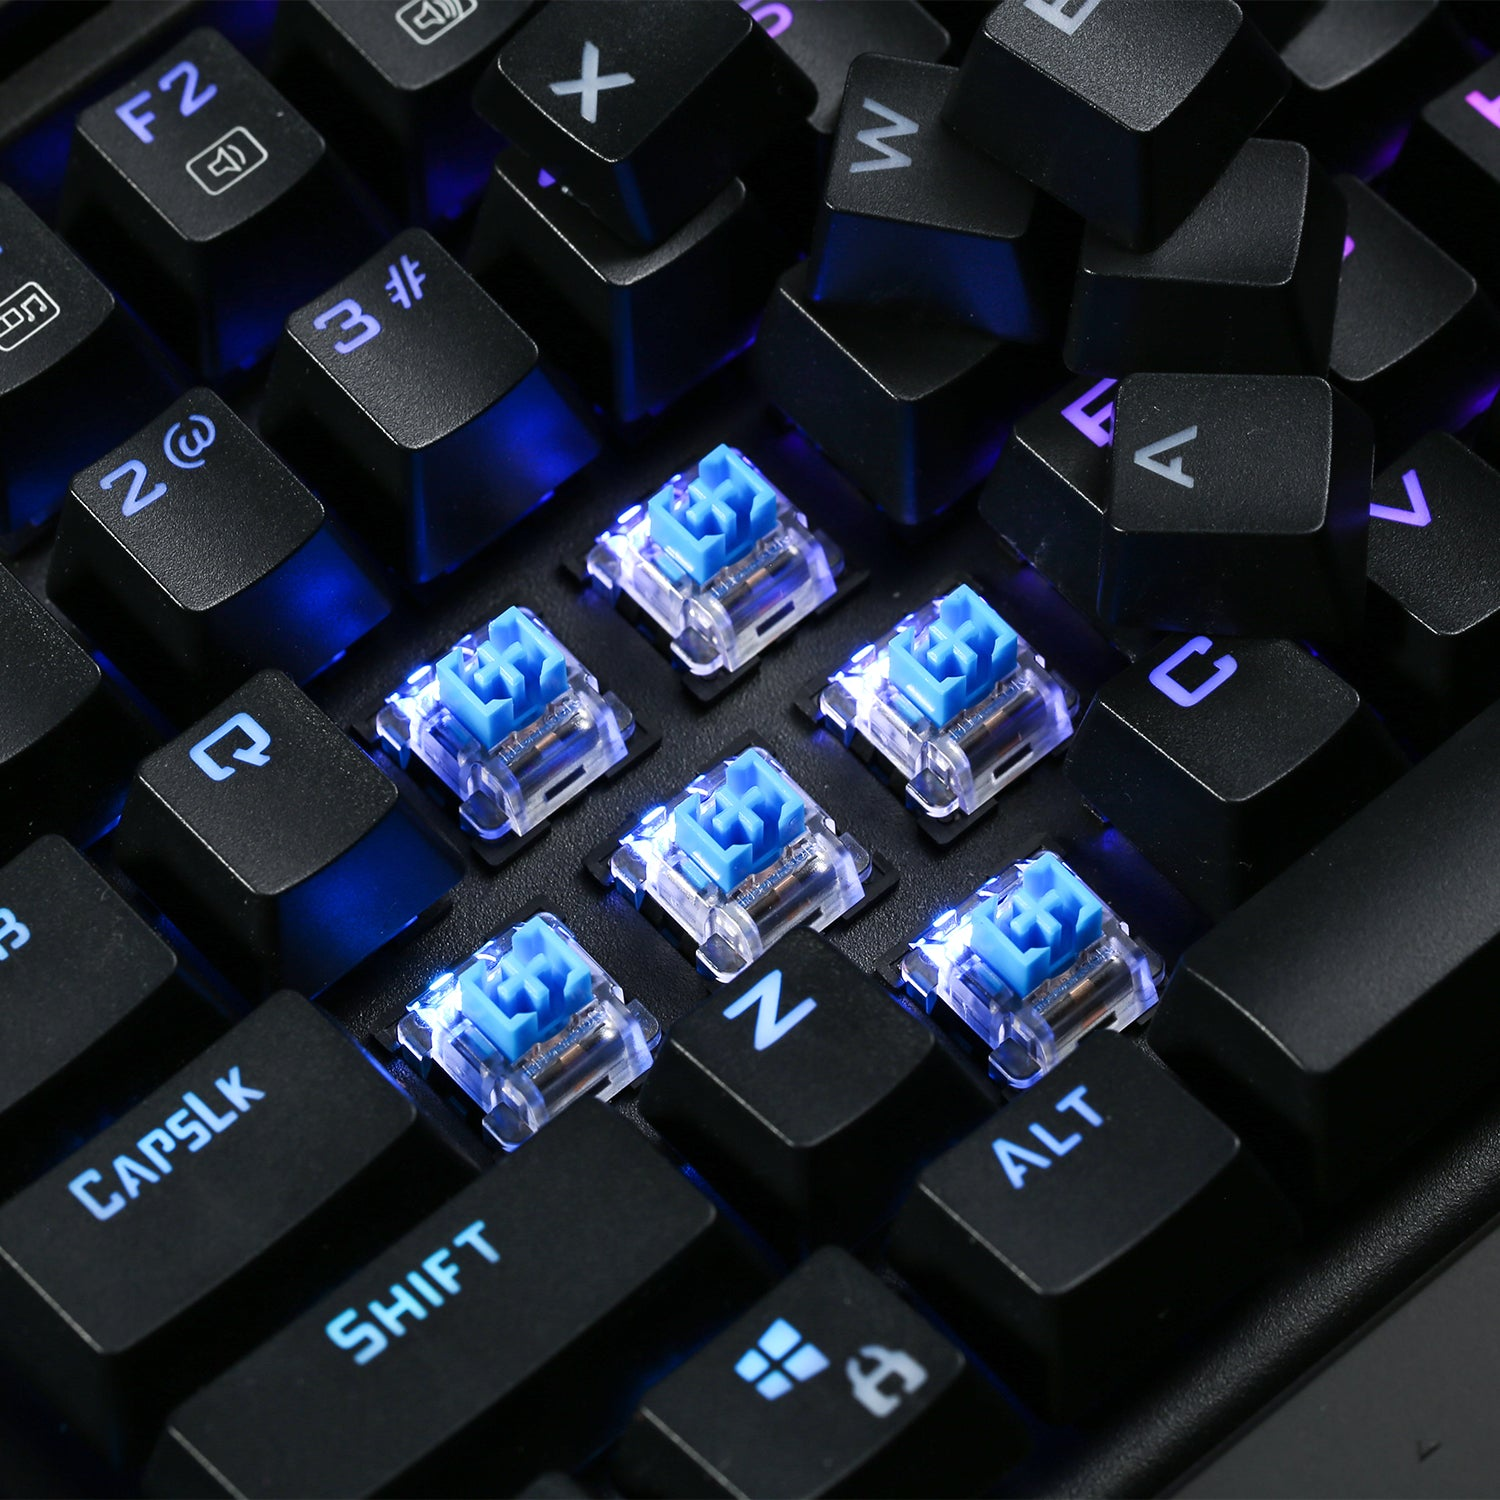 tkl gaming keyboard